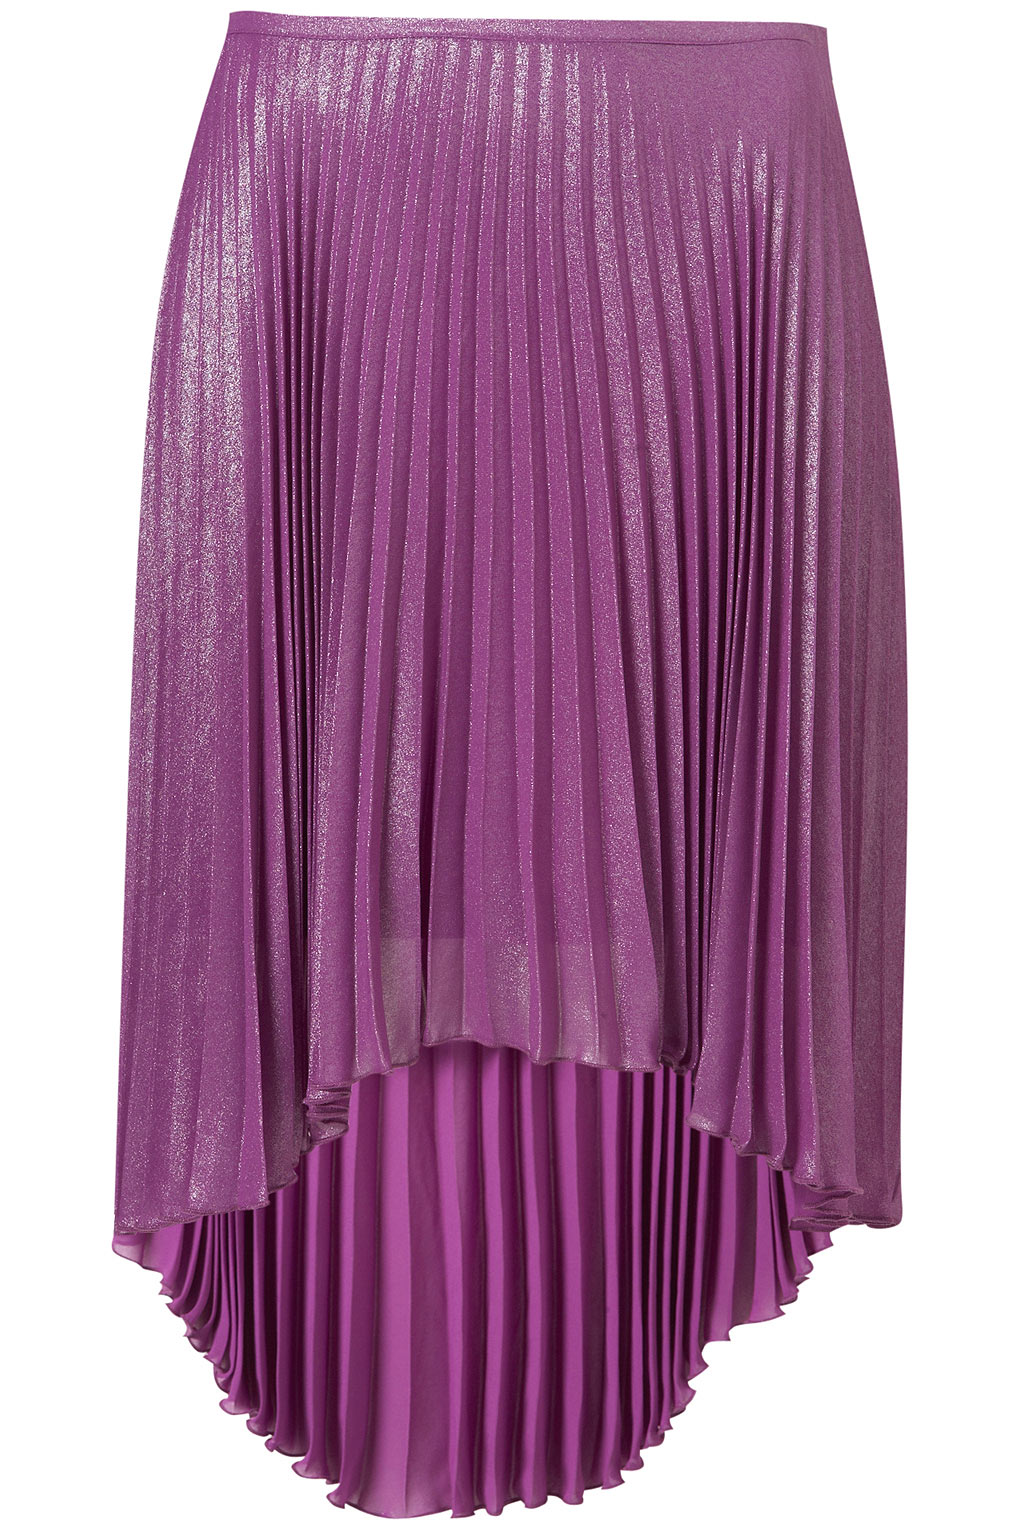 Topshop Shiney Purple Pleated Skirt in Purple | Lyst